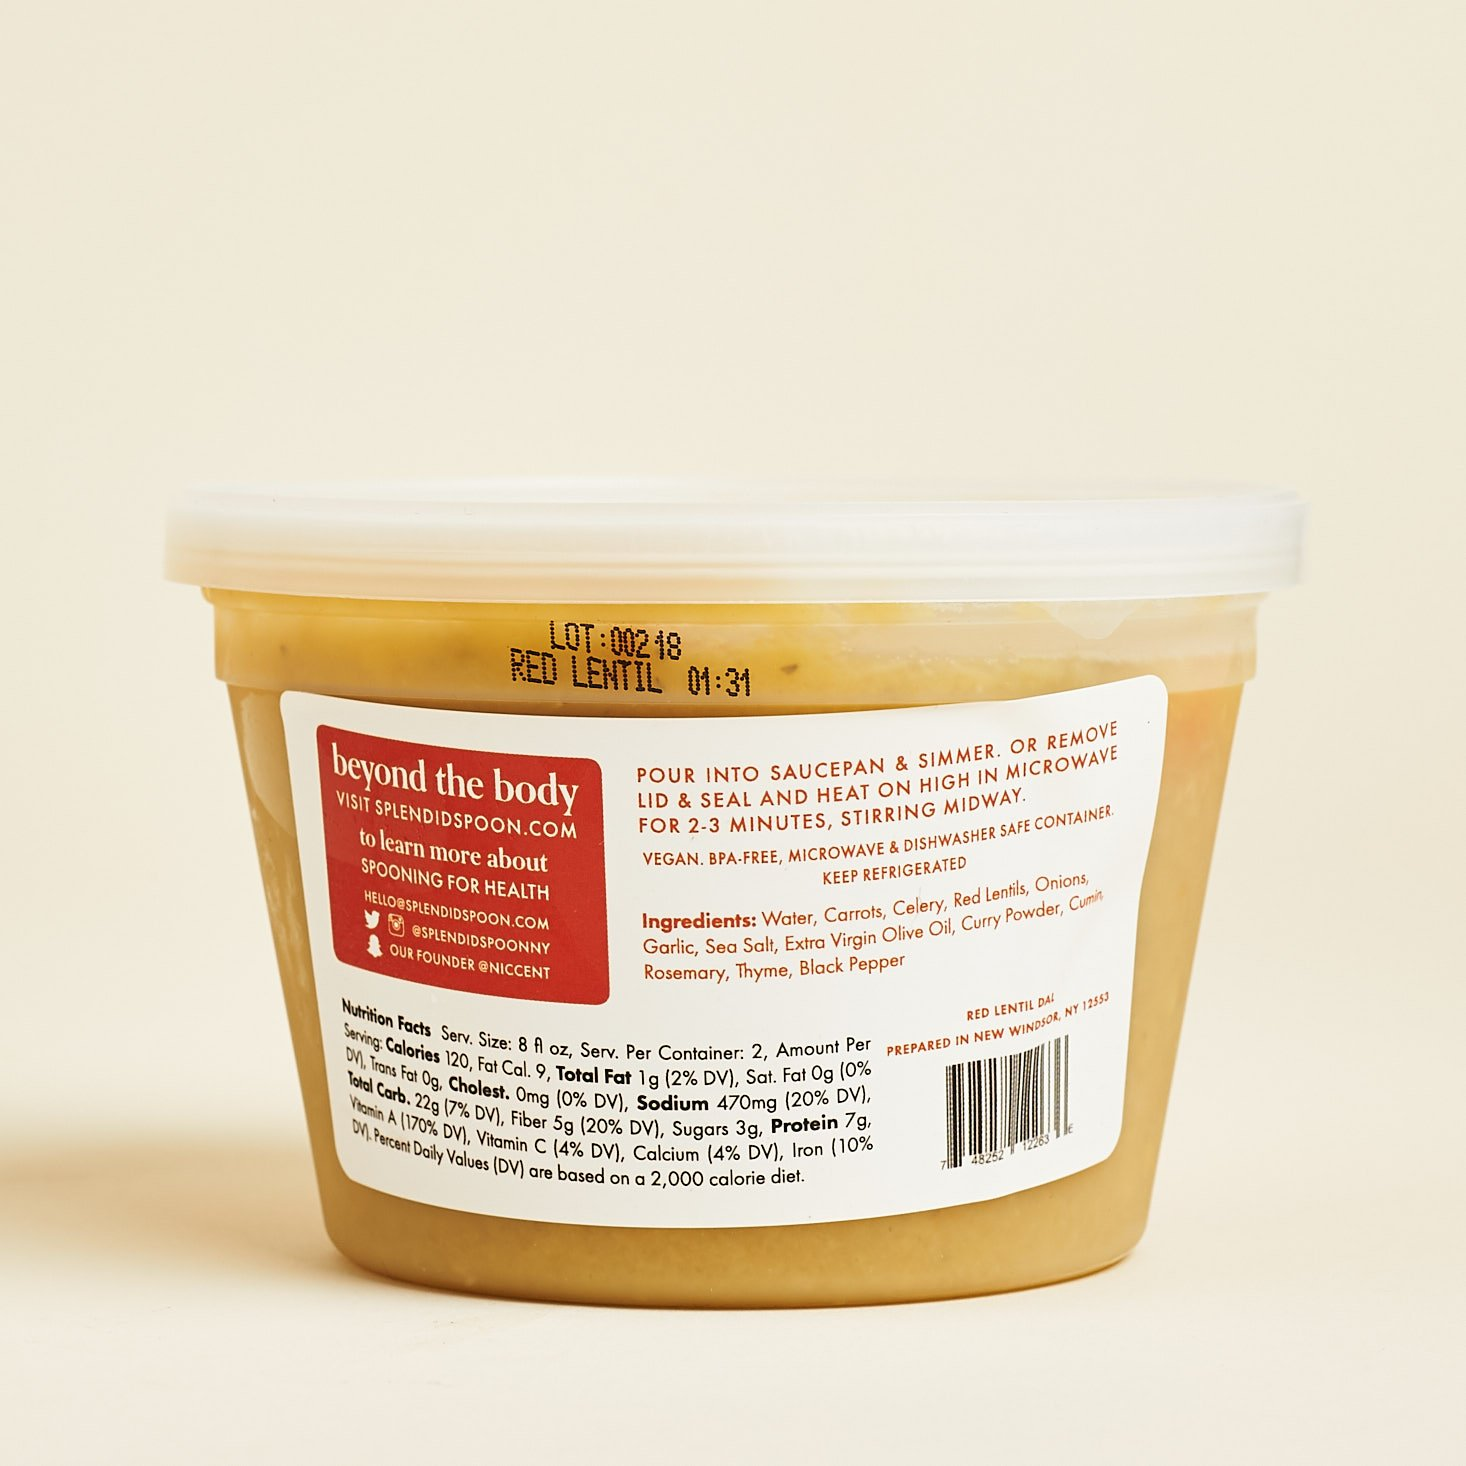 red lentil dal soup label